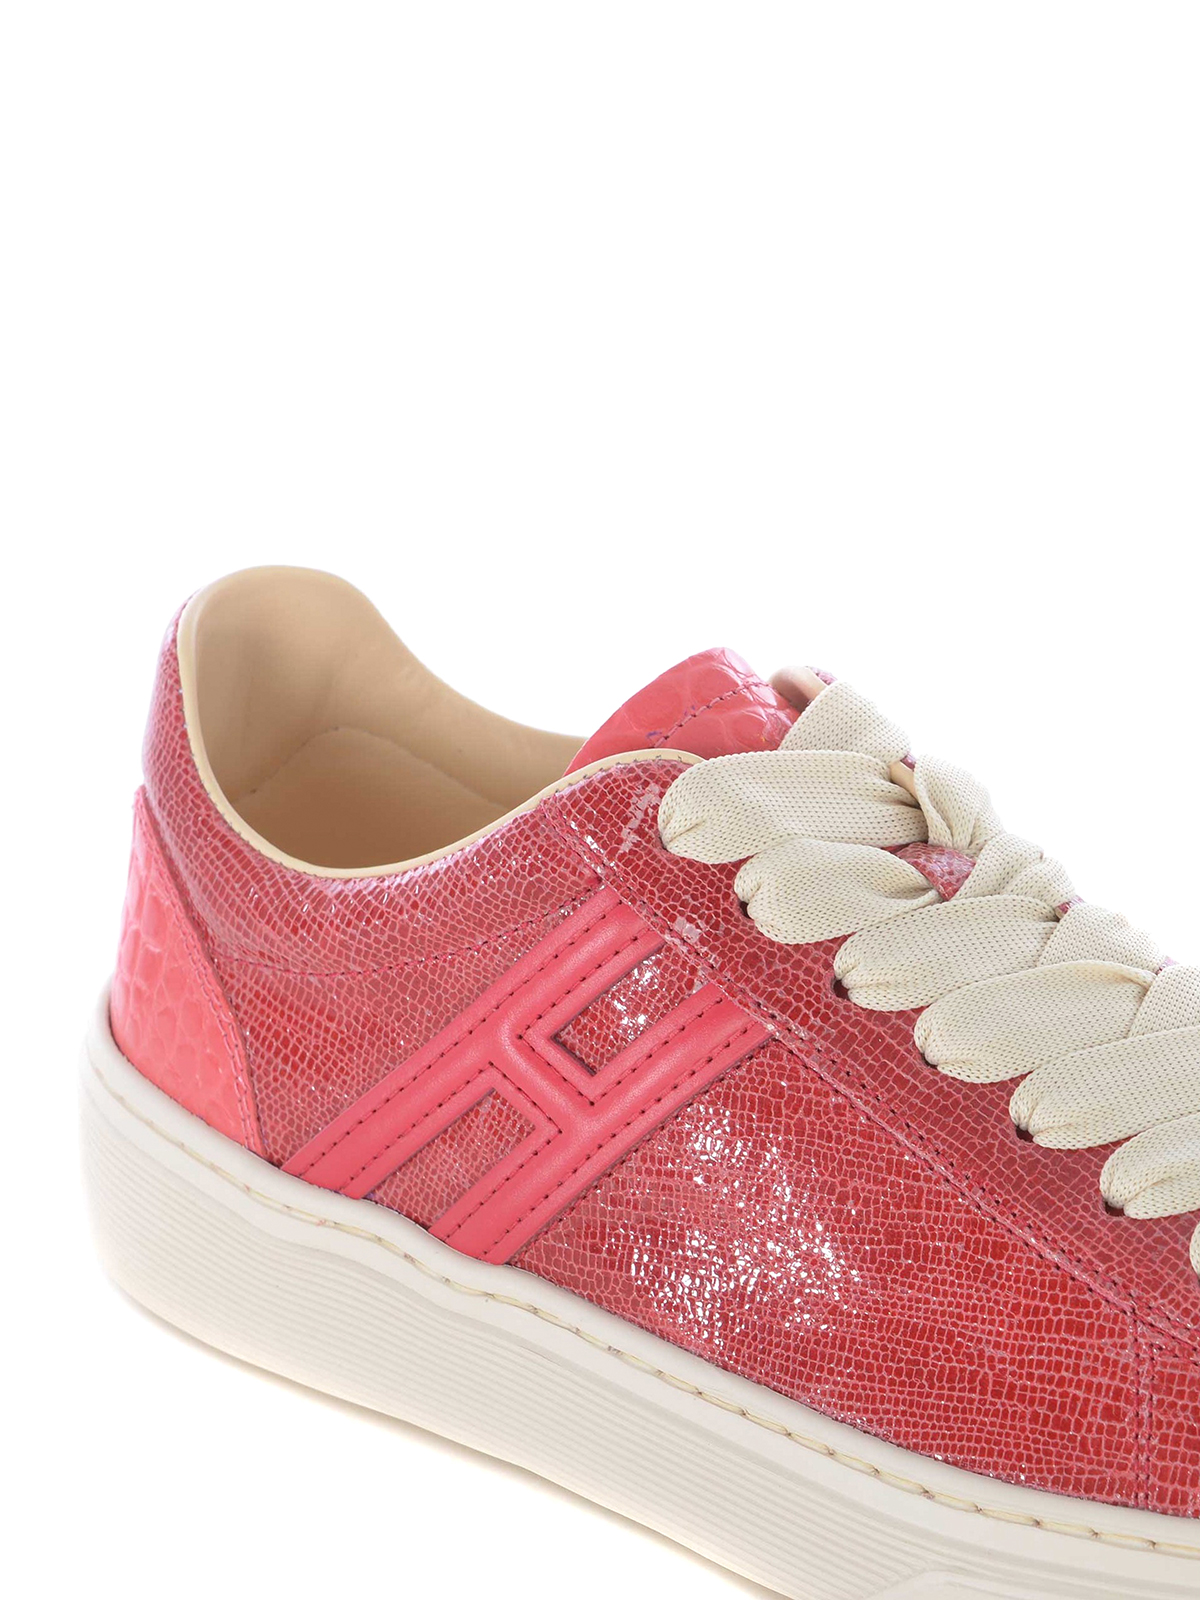 Trainers Hogan - H365 sneakers in red reptile print leather ...